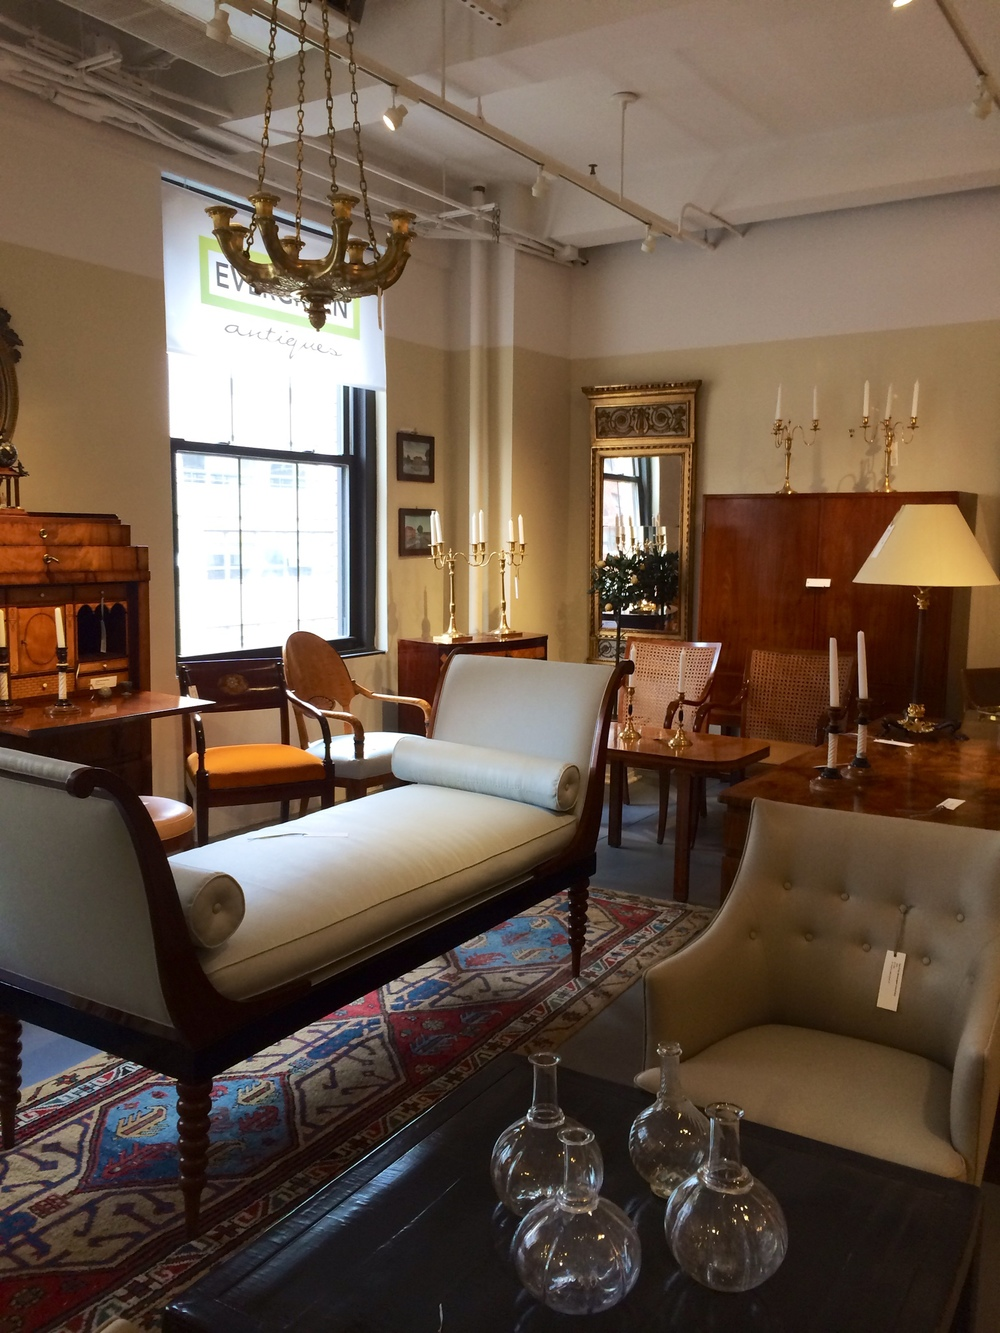 Evergreen Antiques was founded in 1982 in SoHo, NYC by Paul Sigenlaub, who  had the vision to bring unique collections of Scandinavian furniture and  design ... - Our Story — Evergreen Antiques